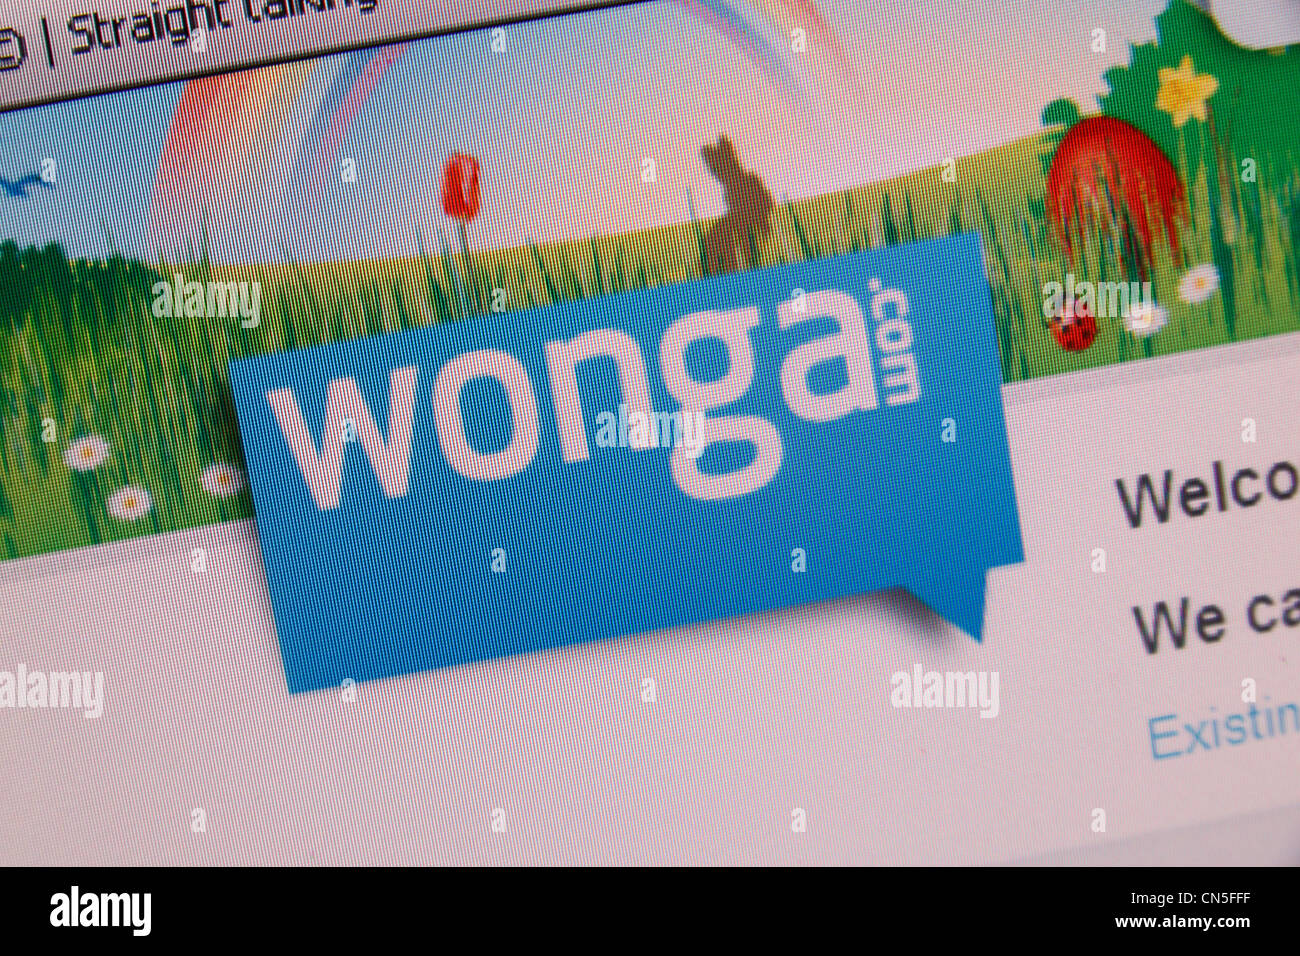 A screenshot of the Wonga.com web site & logo, a payday loan company in the UK. - Stock Image